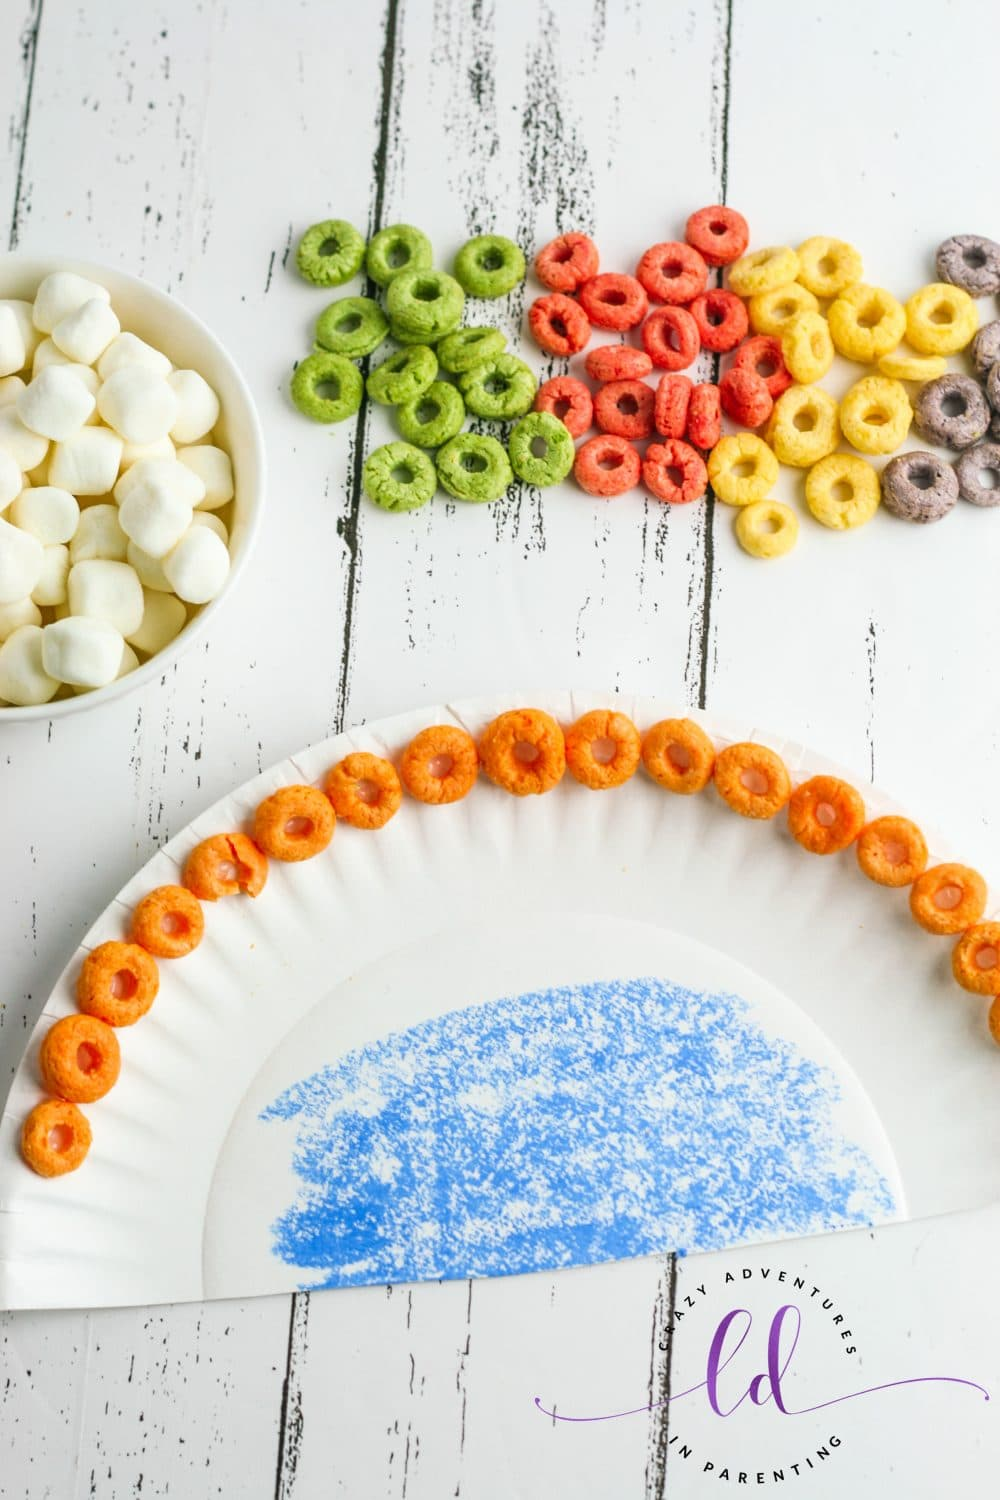 First Row of Cereal for Cereal Rainbow Craft